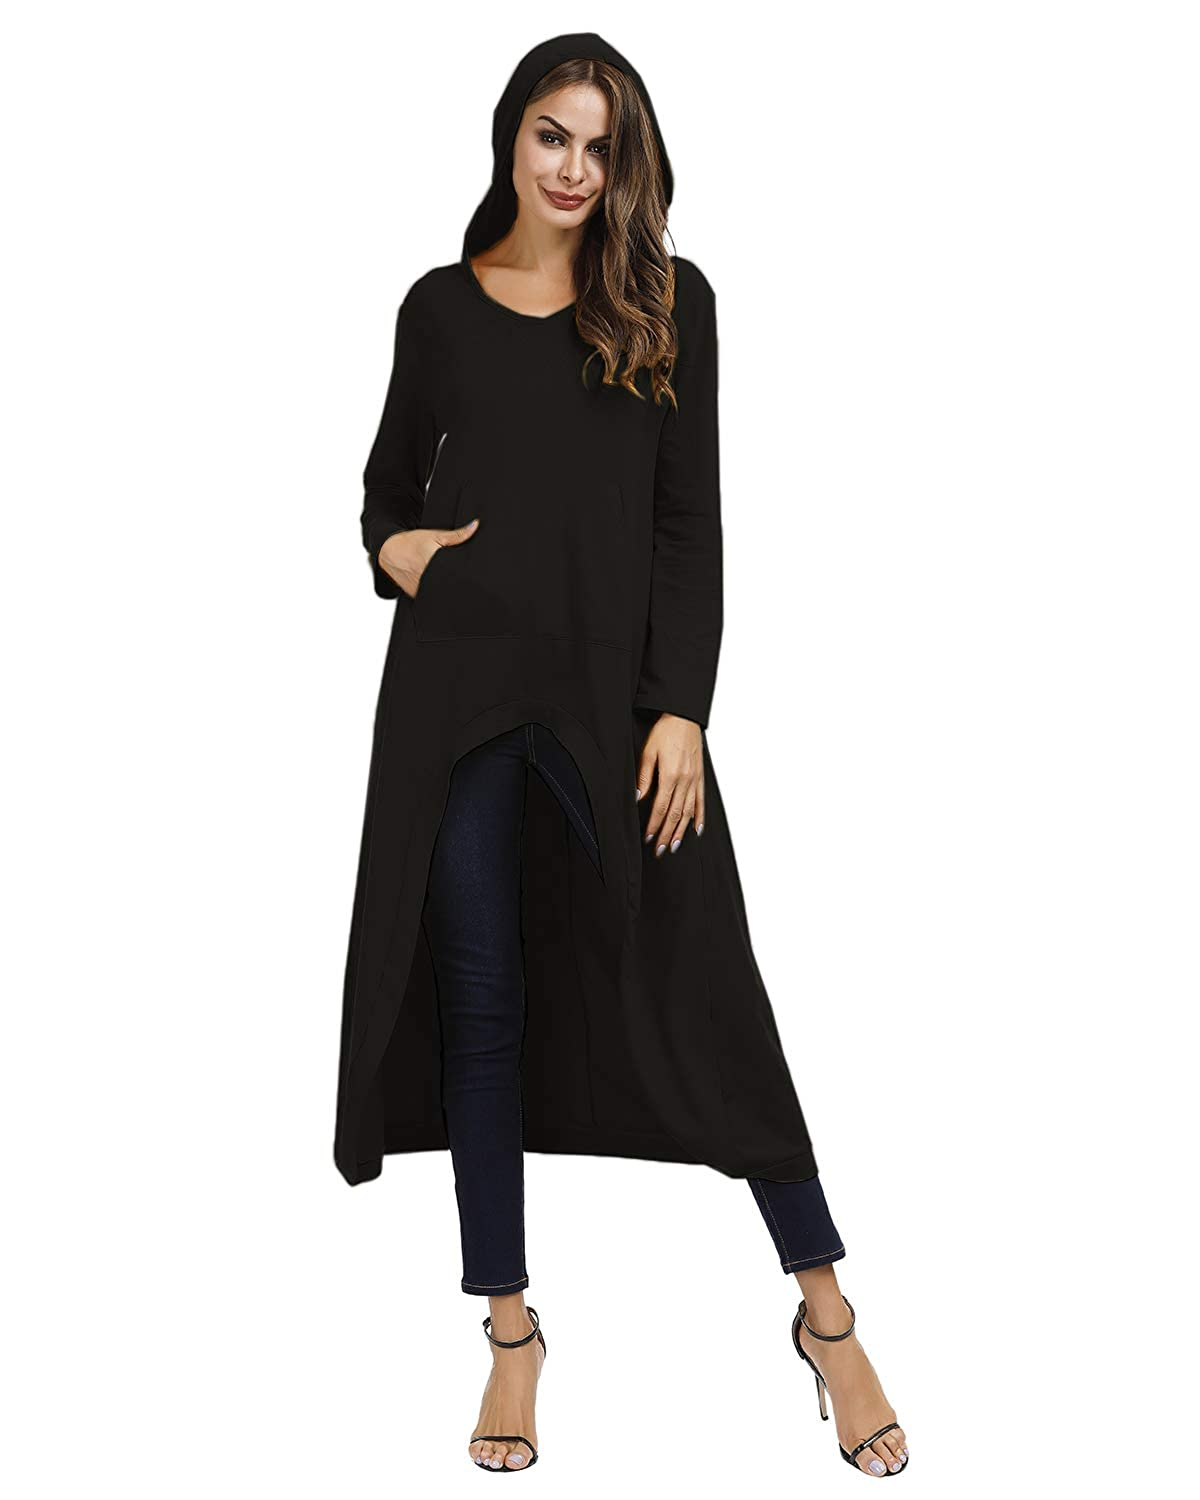 Jacansi Womens Comfy High Low Tops V-Neck 3//4 Sleeve Long Hi-Lo Maxi Tunic Tops